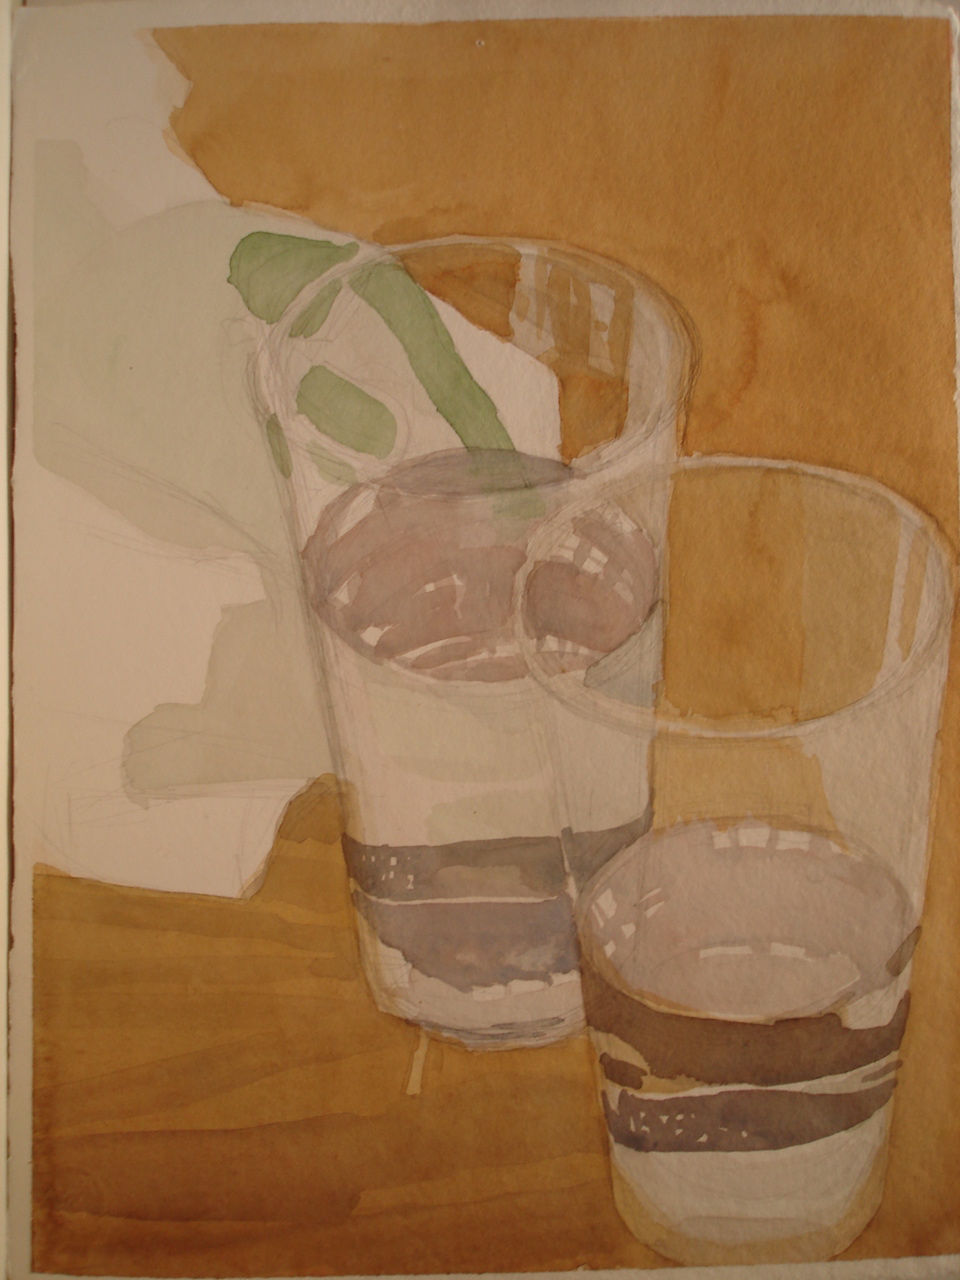 Watercolor on paper 11 x 14 inches Tarek Ashkar, 2005